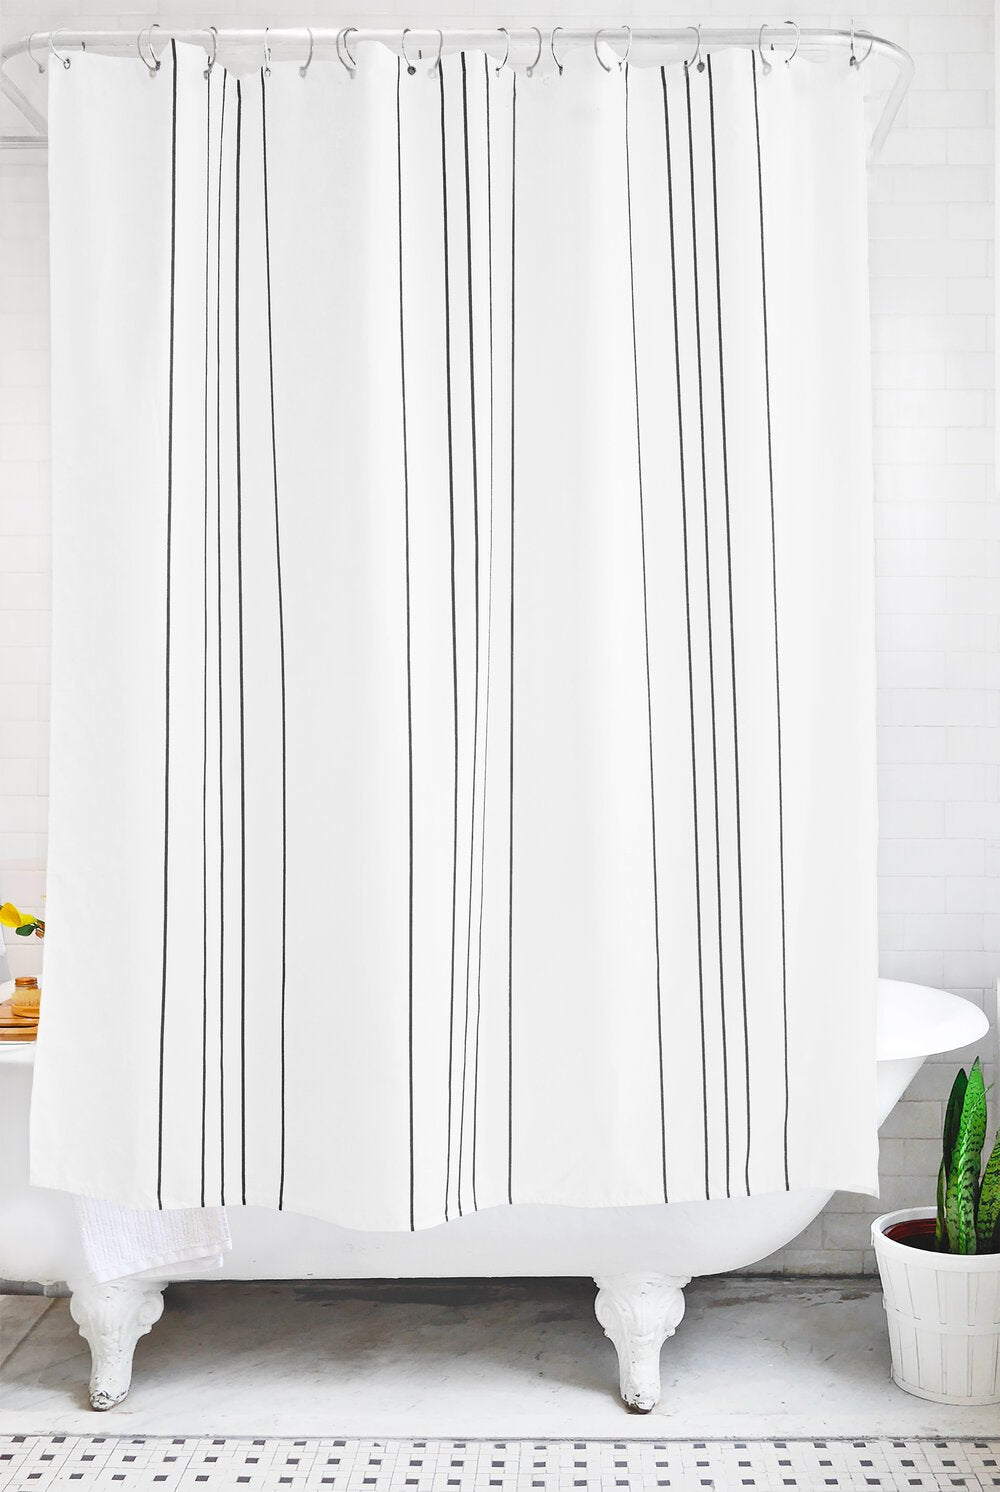 stripe: charcoal and white - Bathage